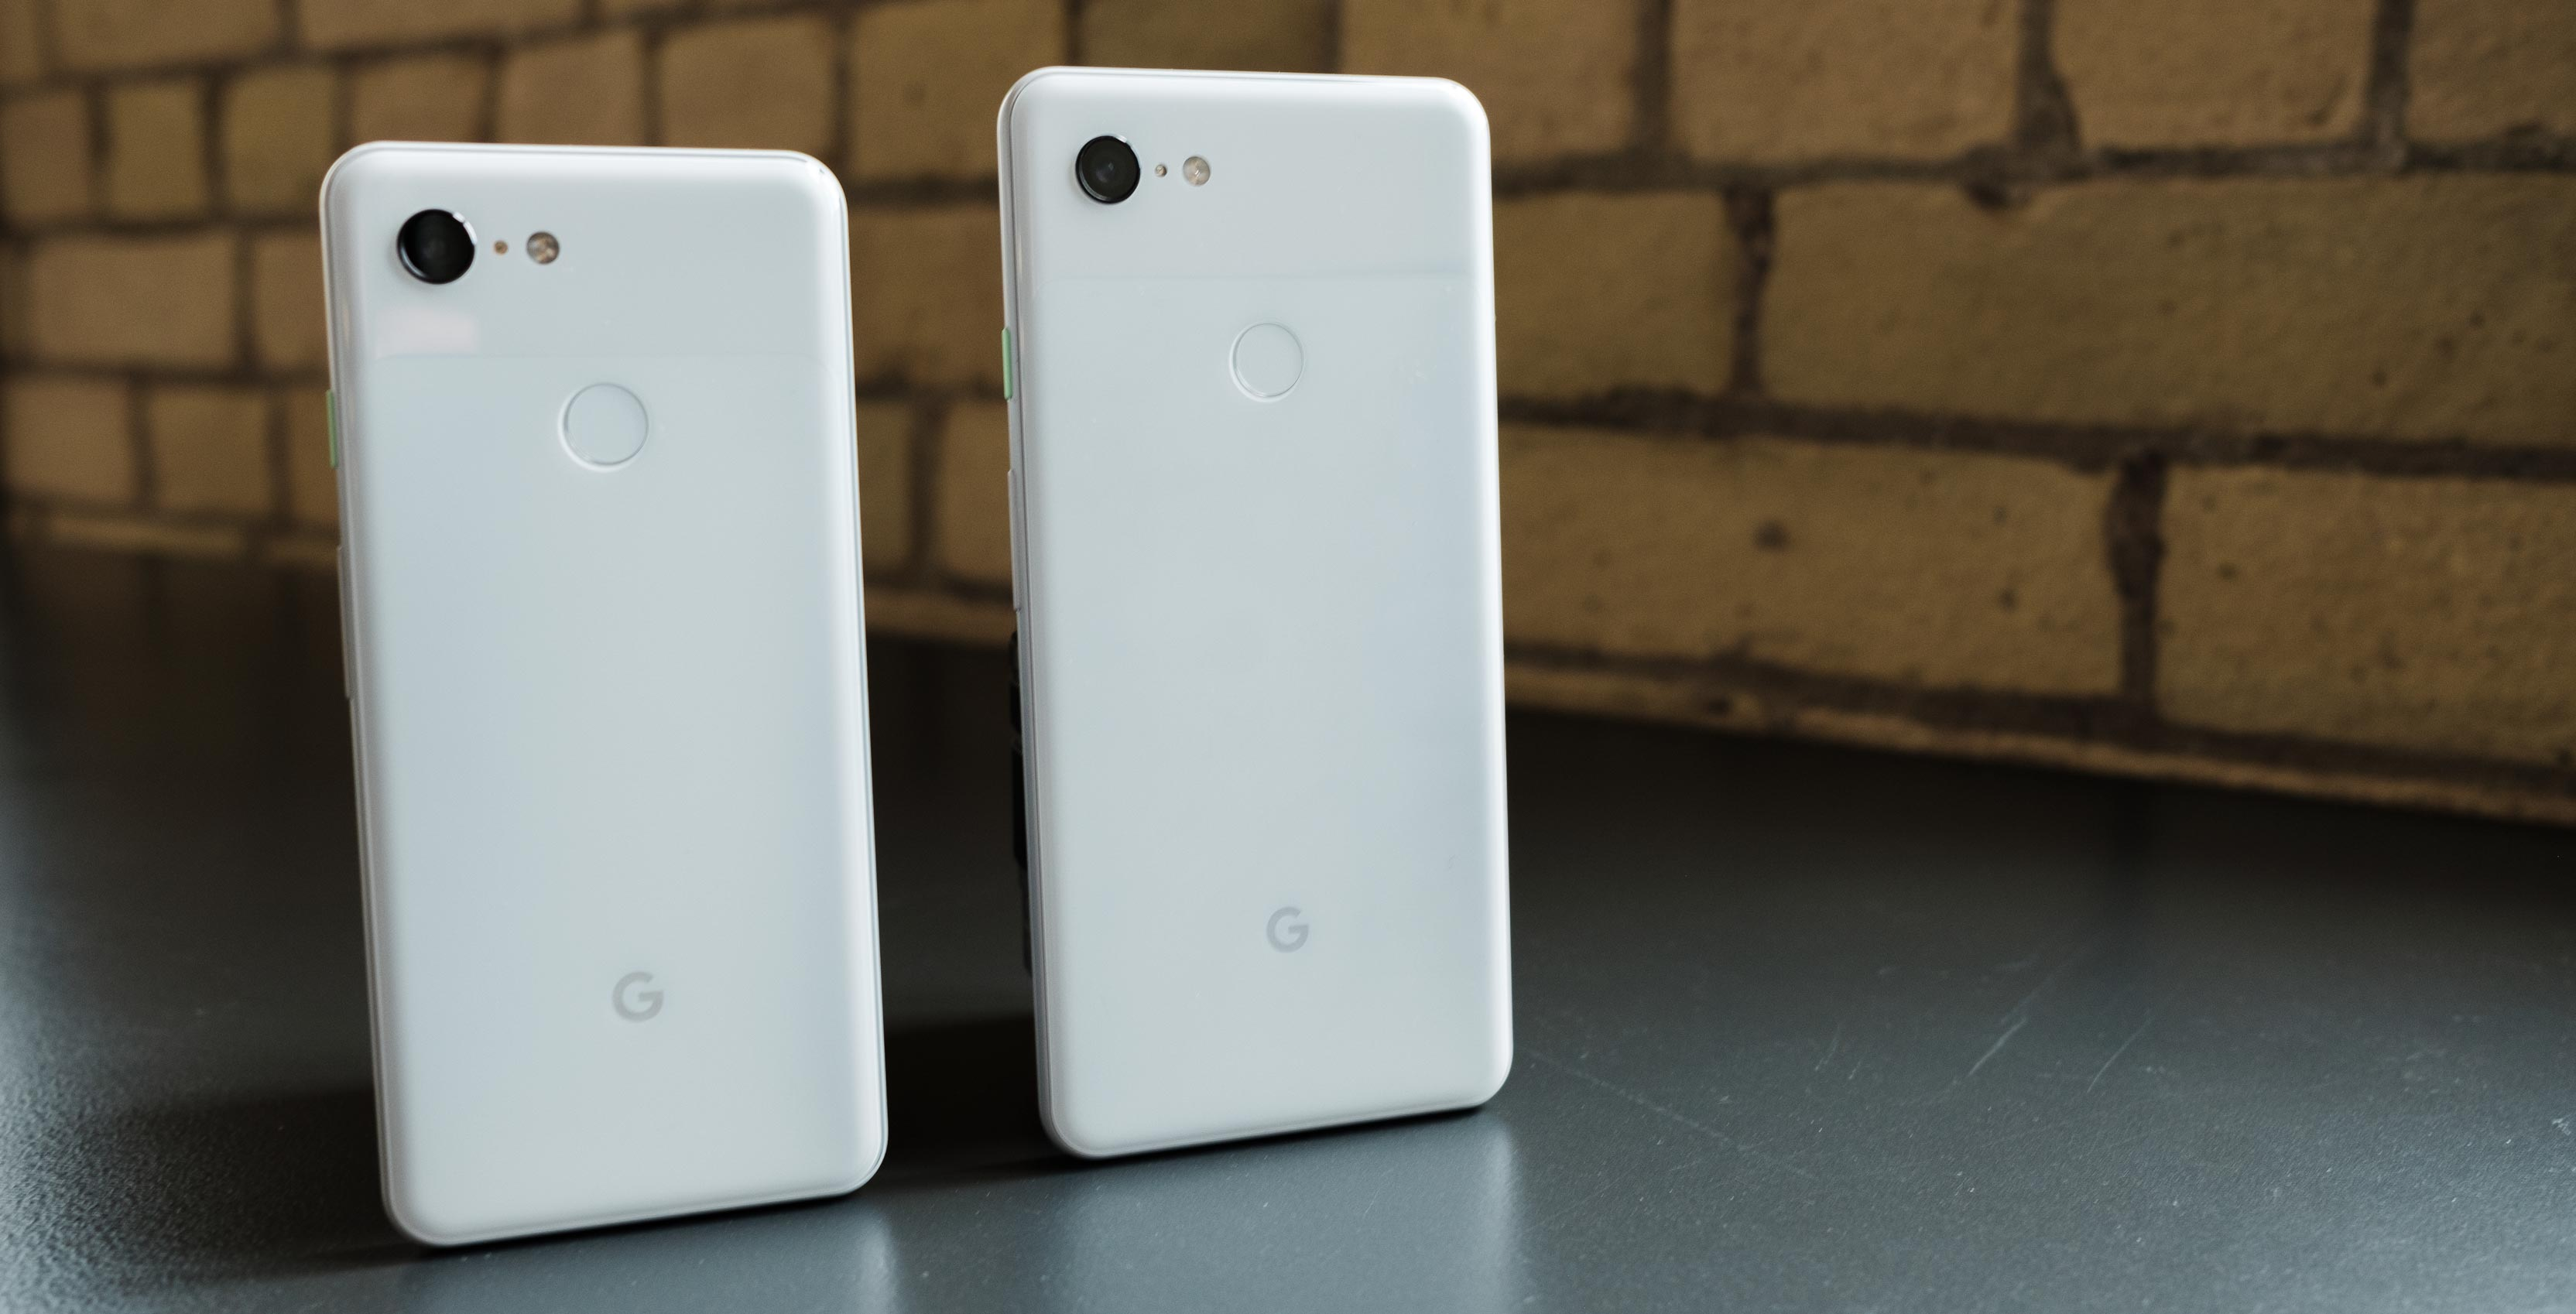 Google Store offering big deals on Pixel 3 XL, Pixelbook, Home and more